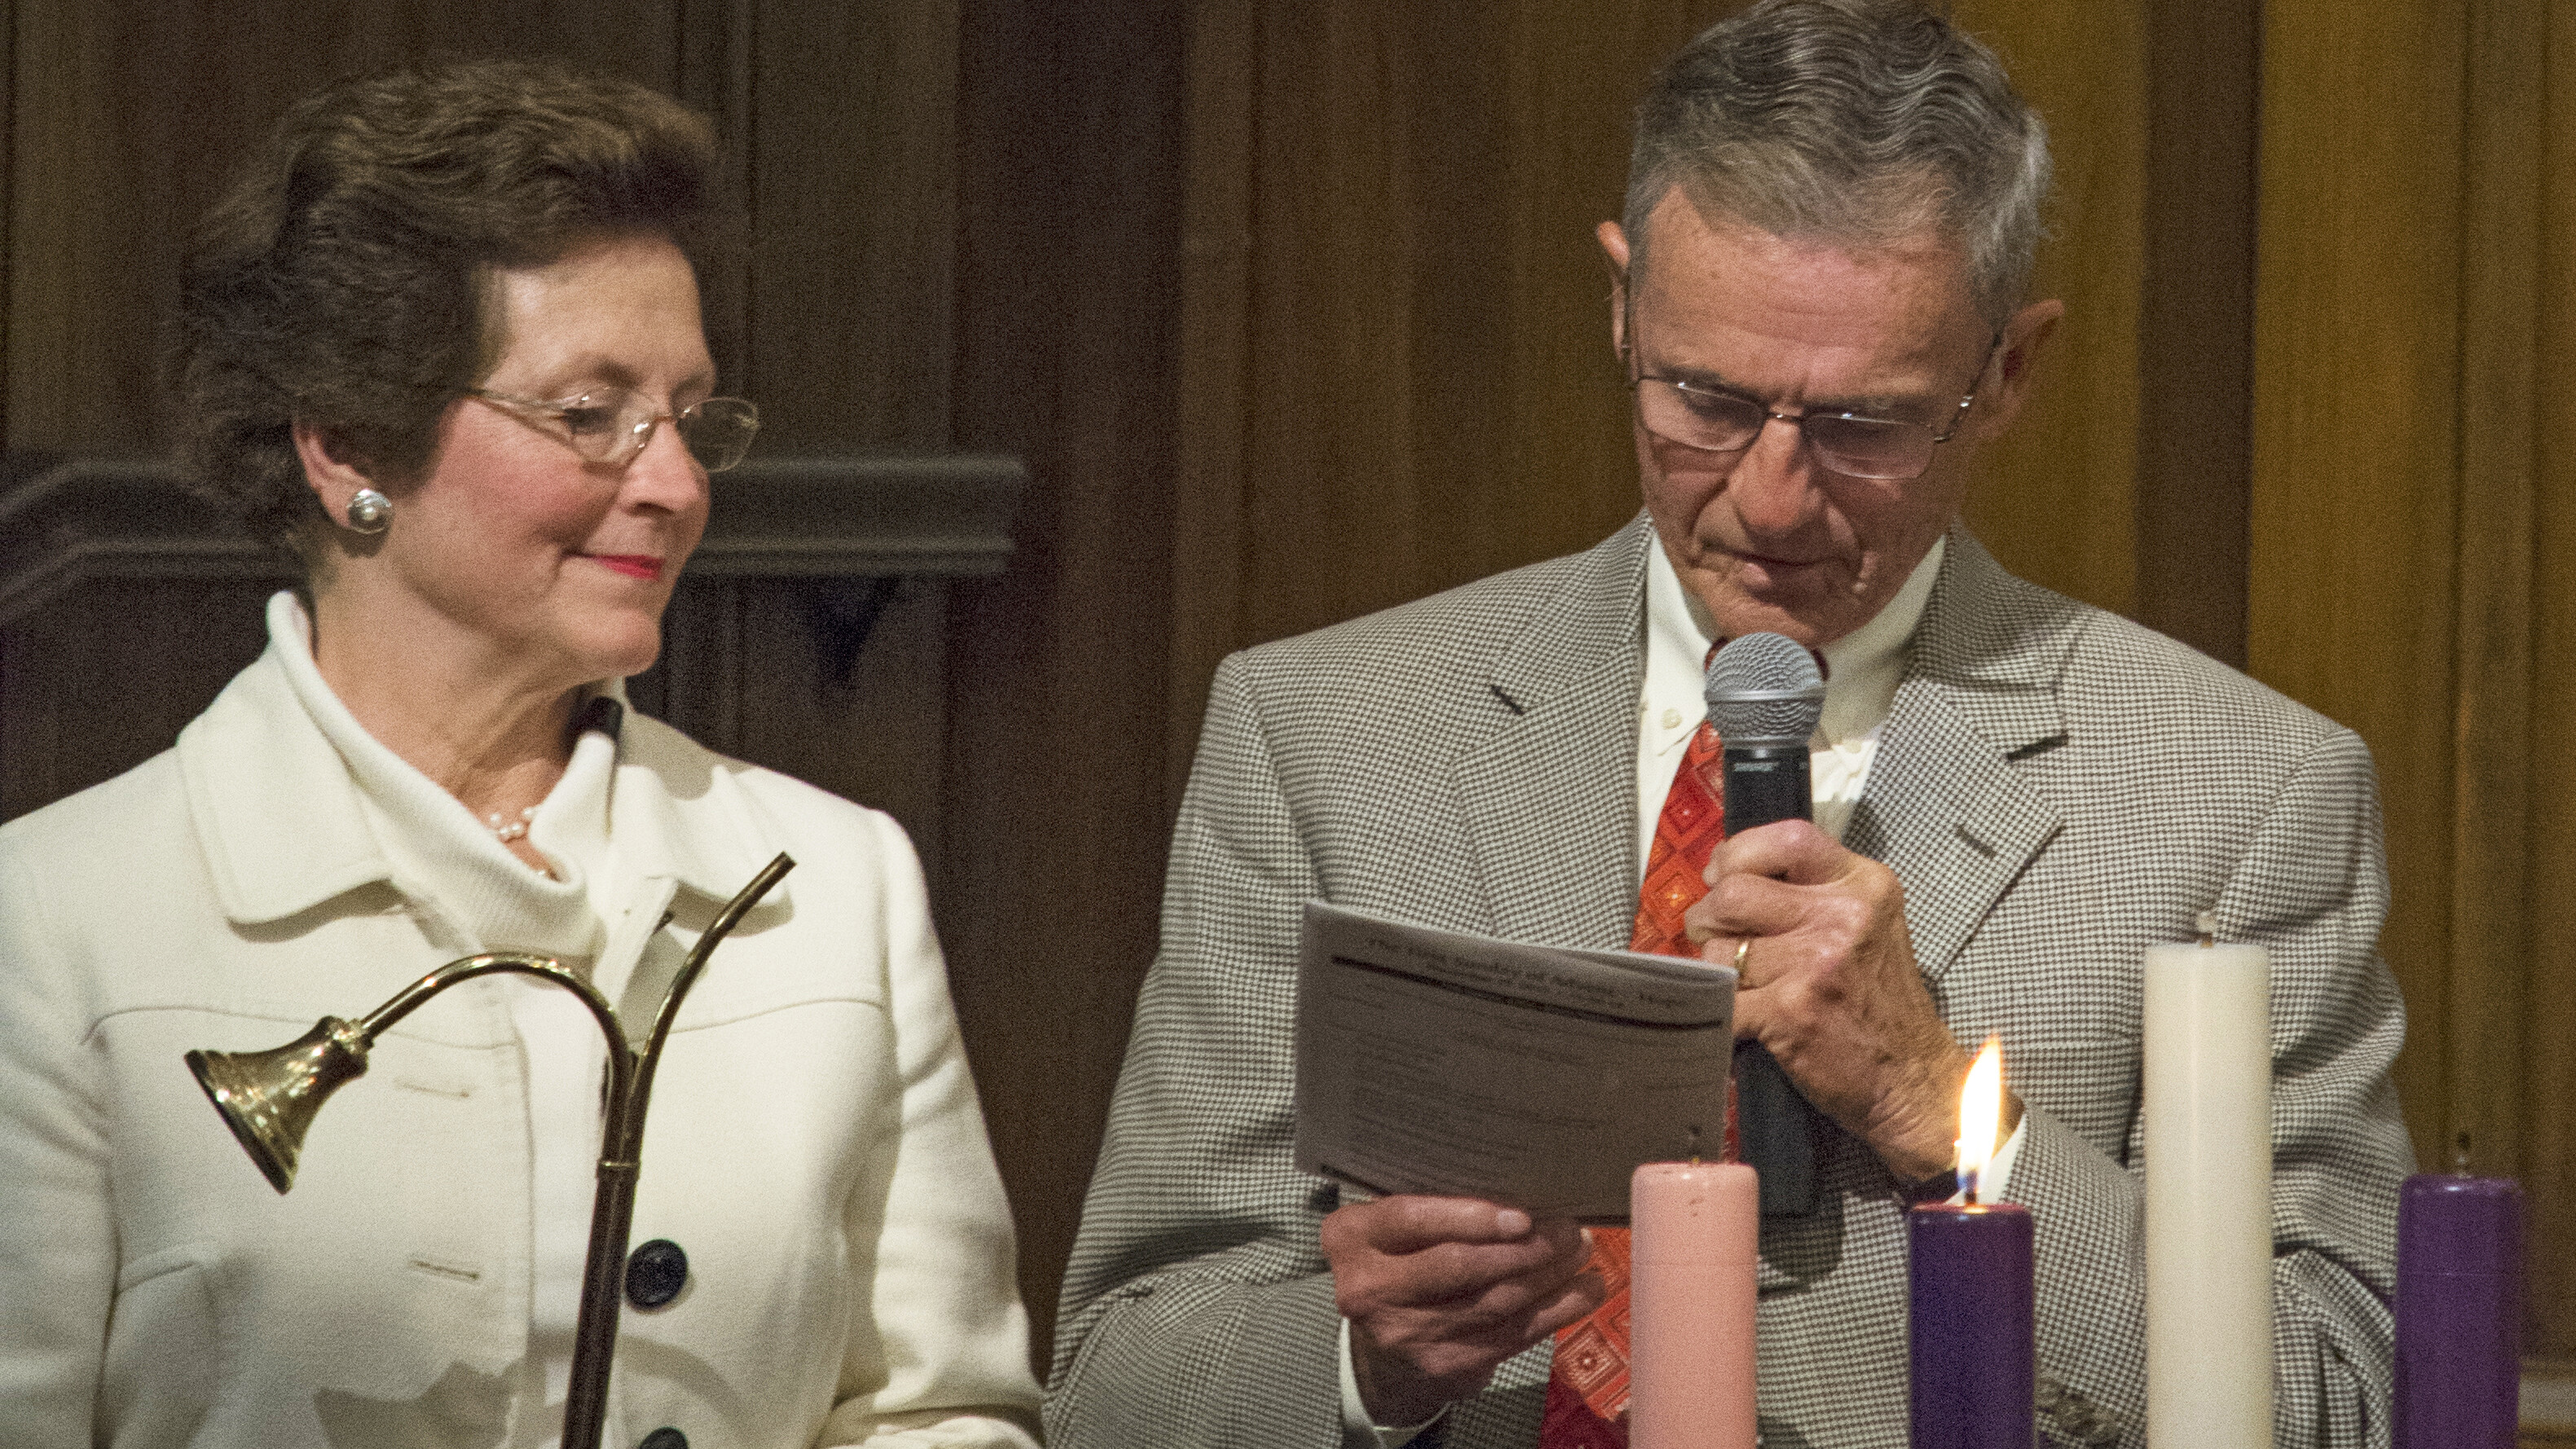 Bob and Sydnor lighting the Advent candle at First Baptist